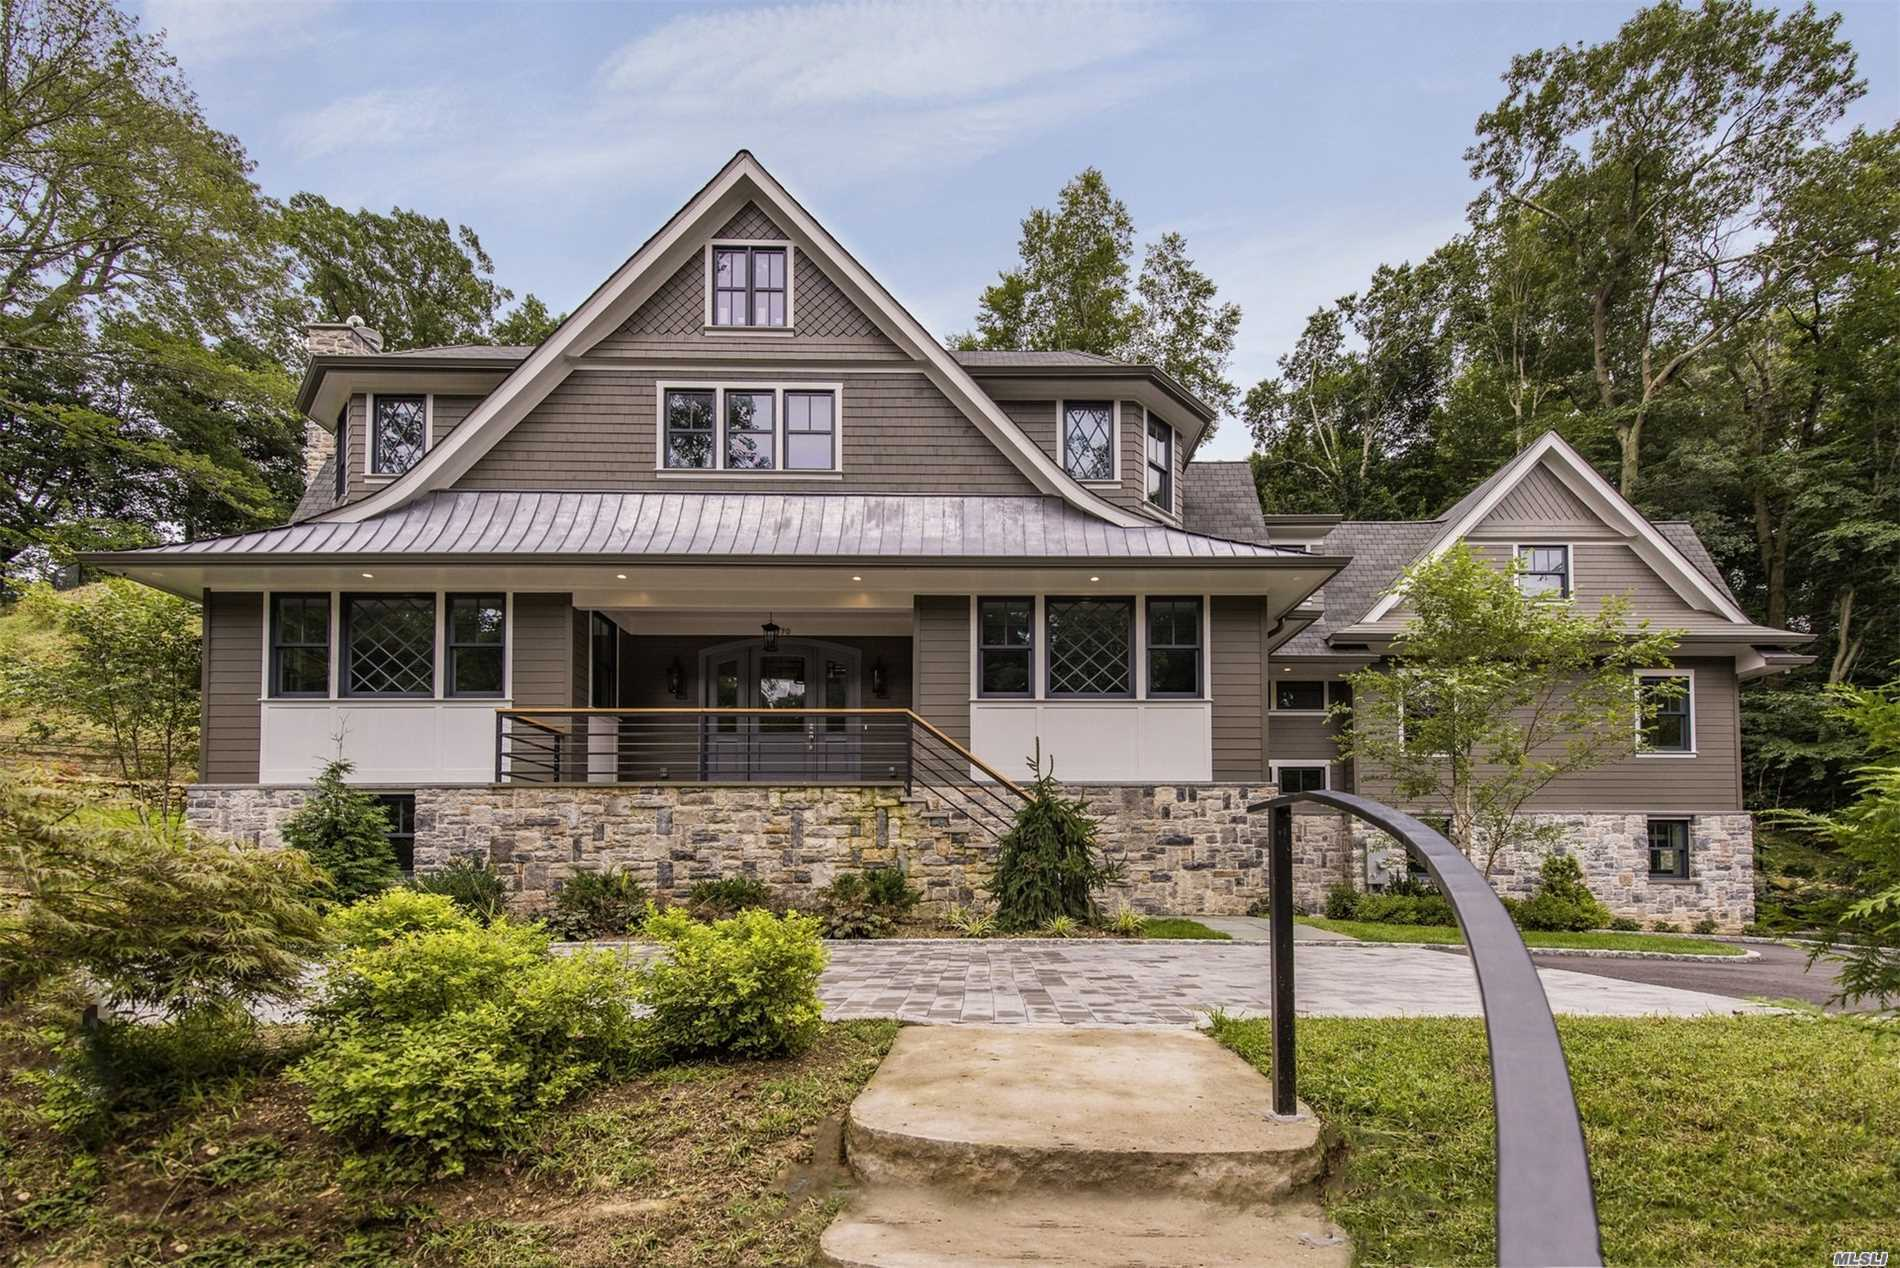 New Construction In Flower Hill With Over One Acre Lot. Luxurious 5,500 Living Spaces With Extraordinary Architectural Details Throughout.